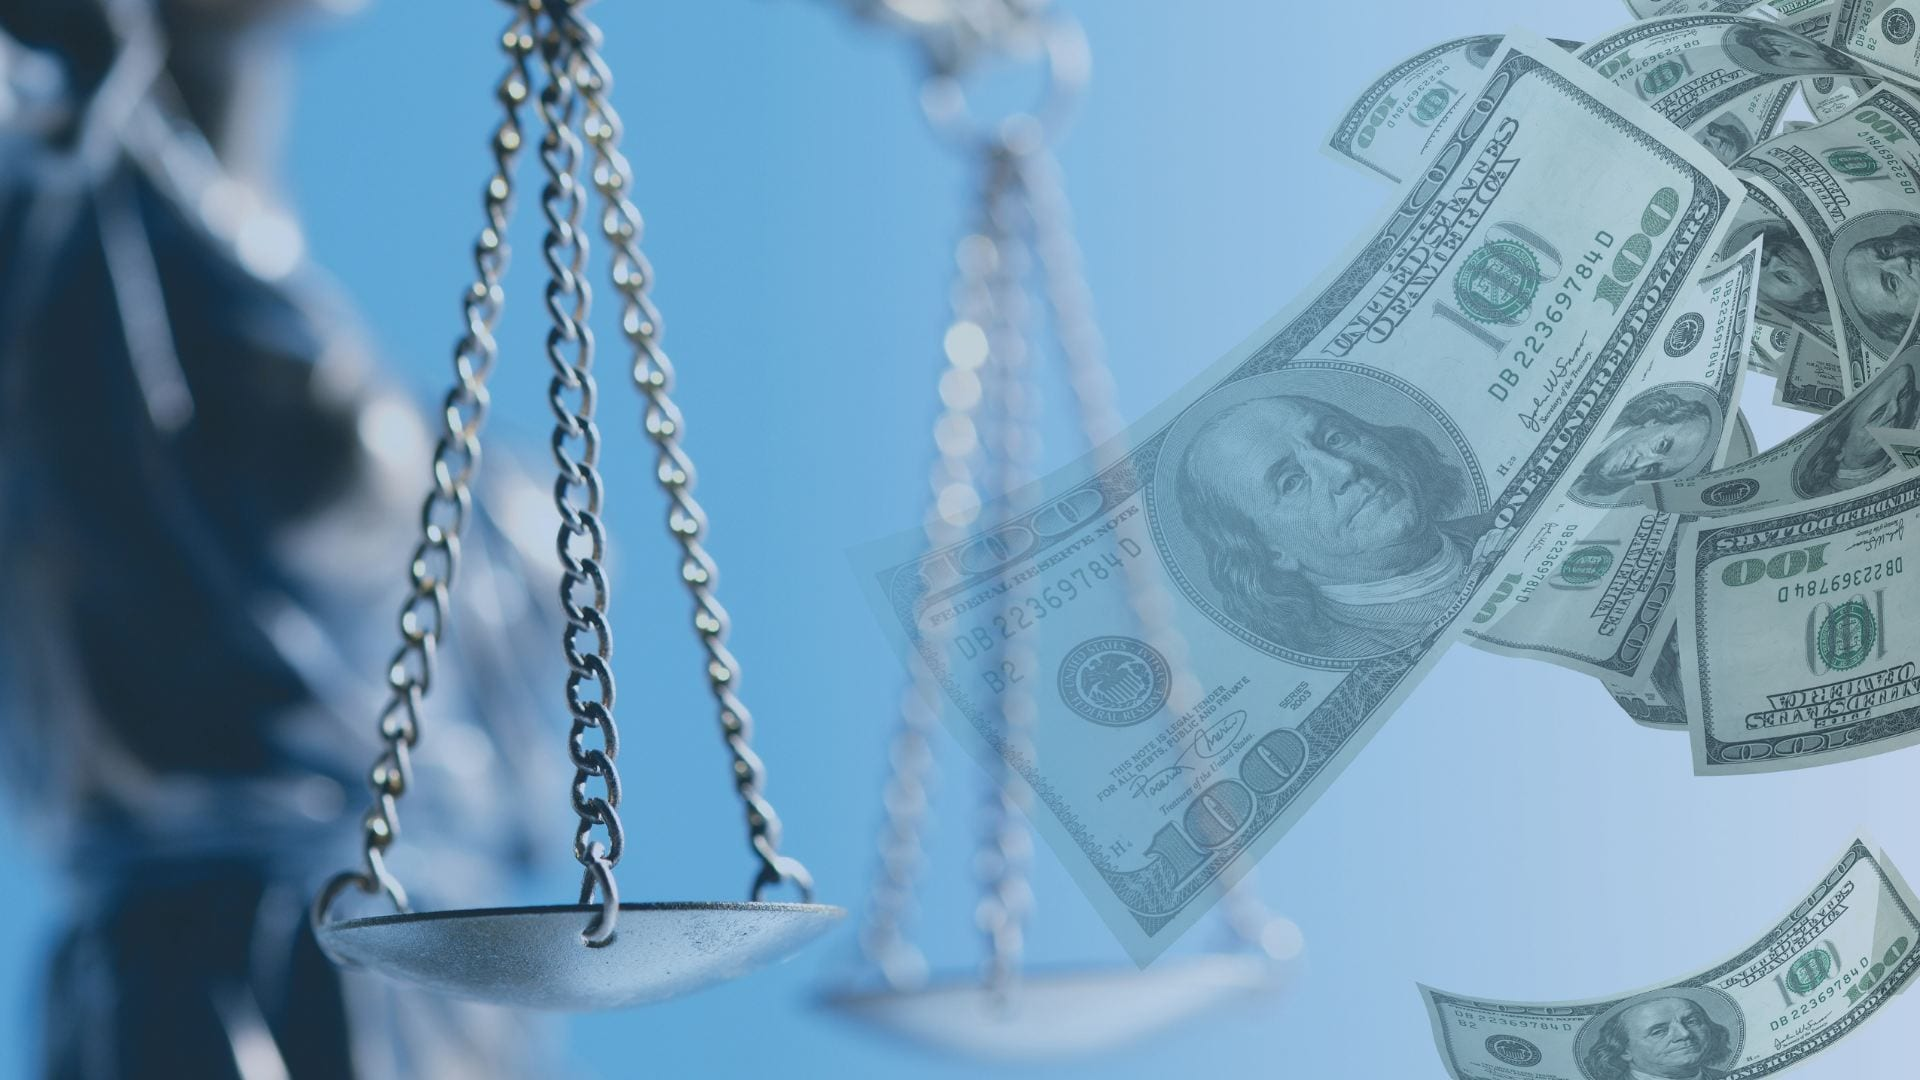 the scales of justice and money